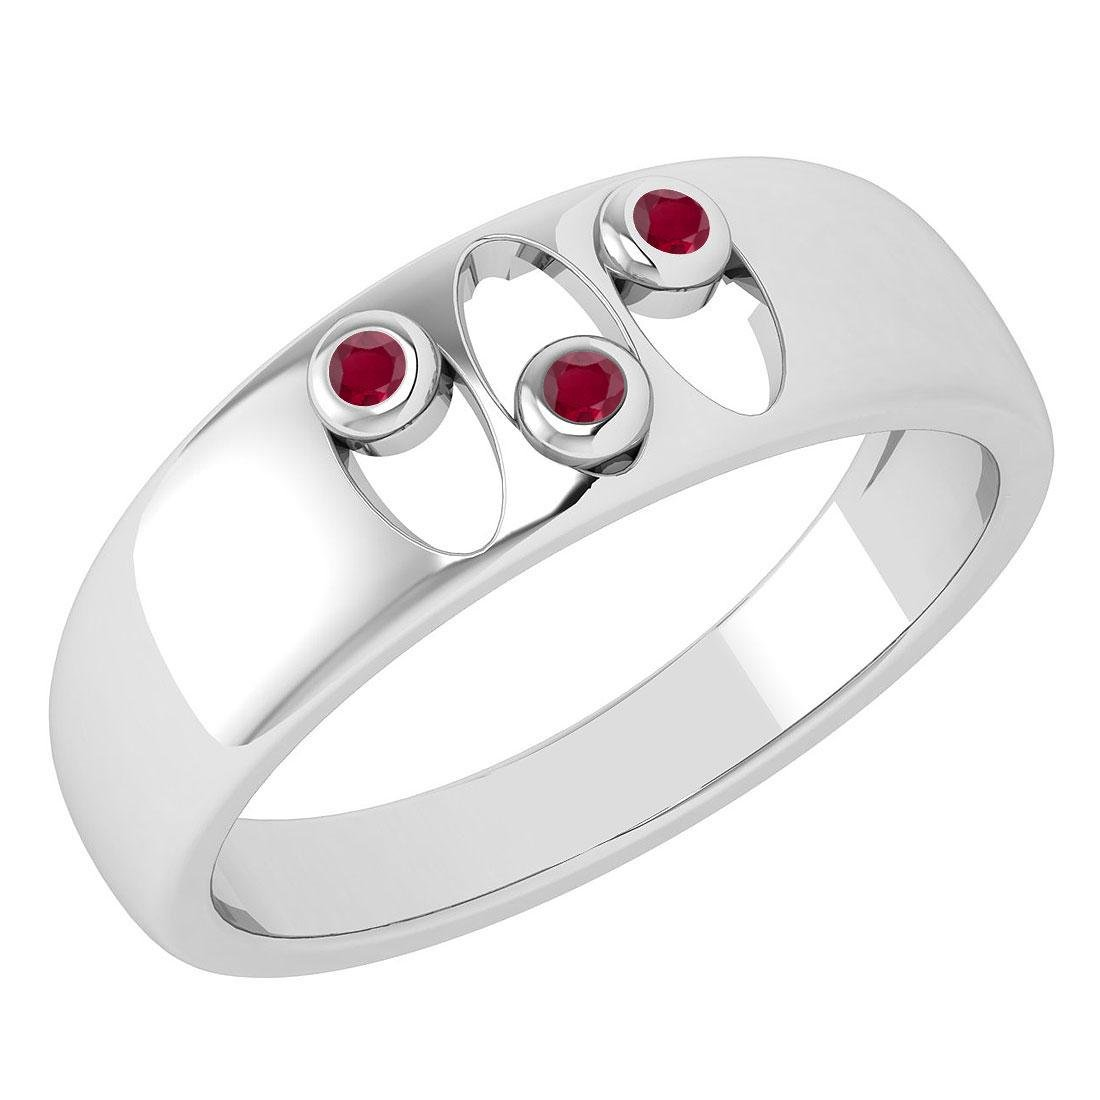 Certified 0.04 Ctw Ruby Wedding Style Halo Bands 14k Wh